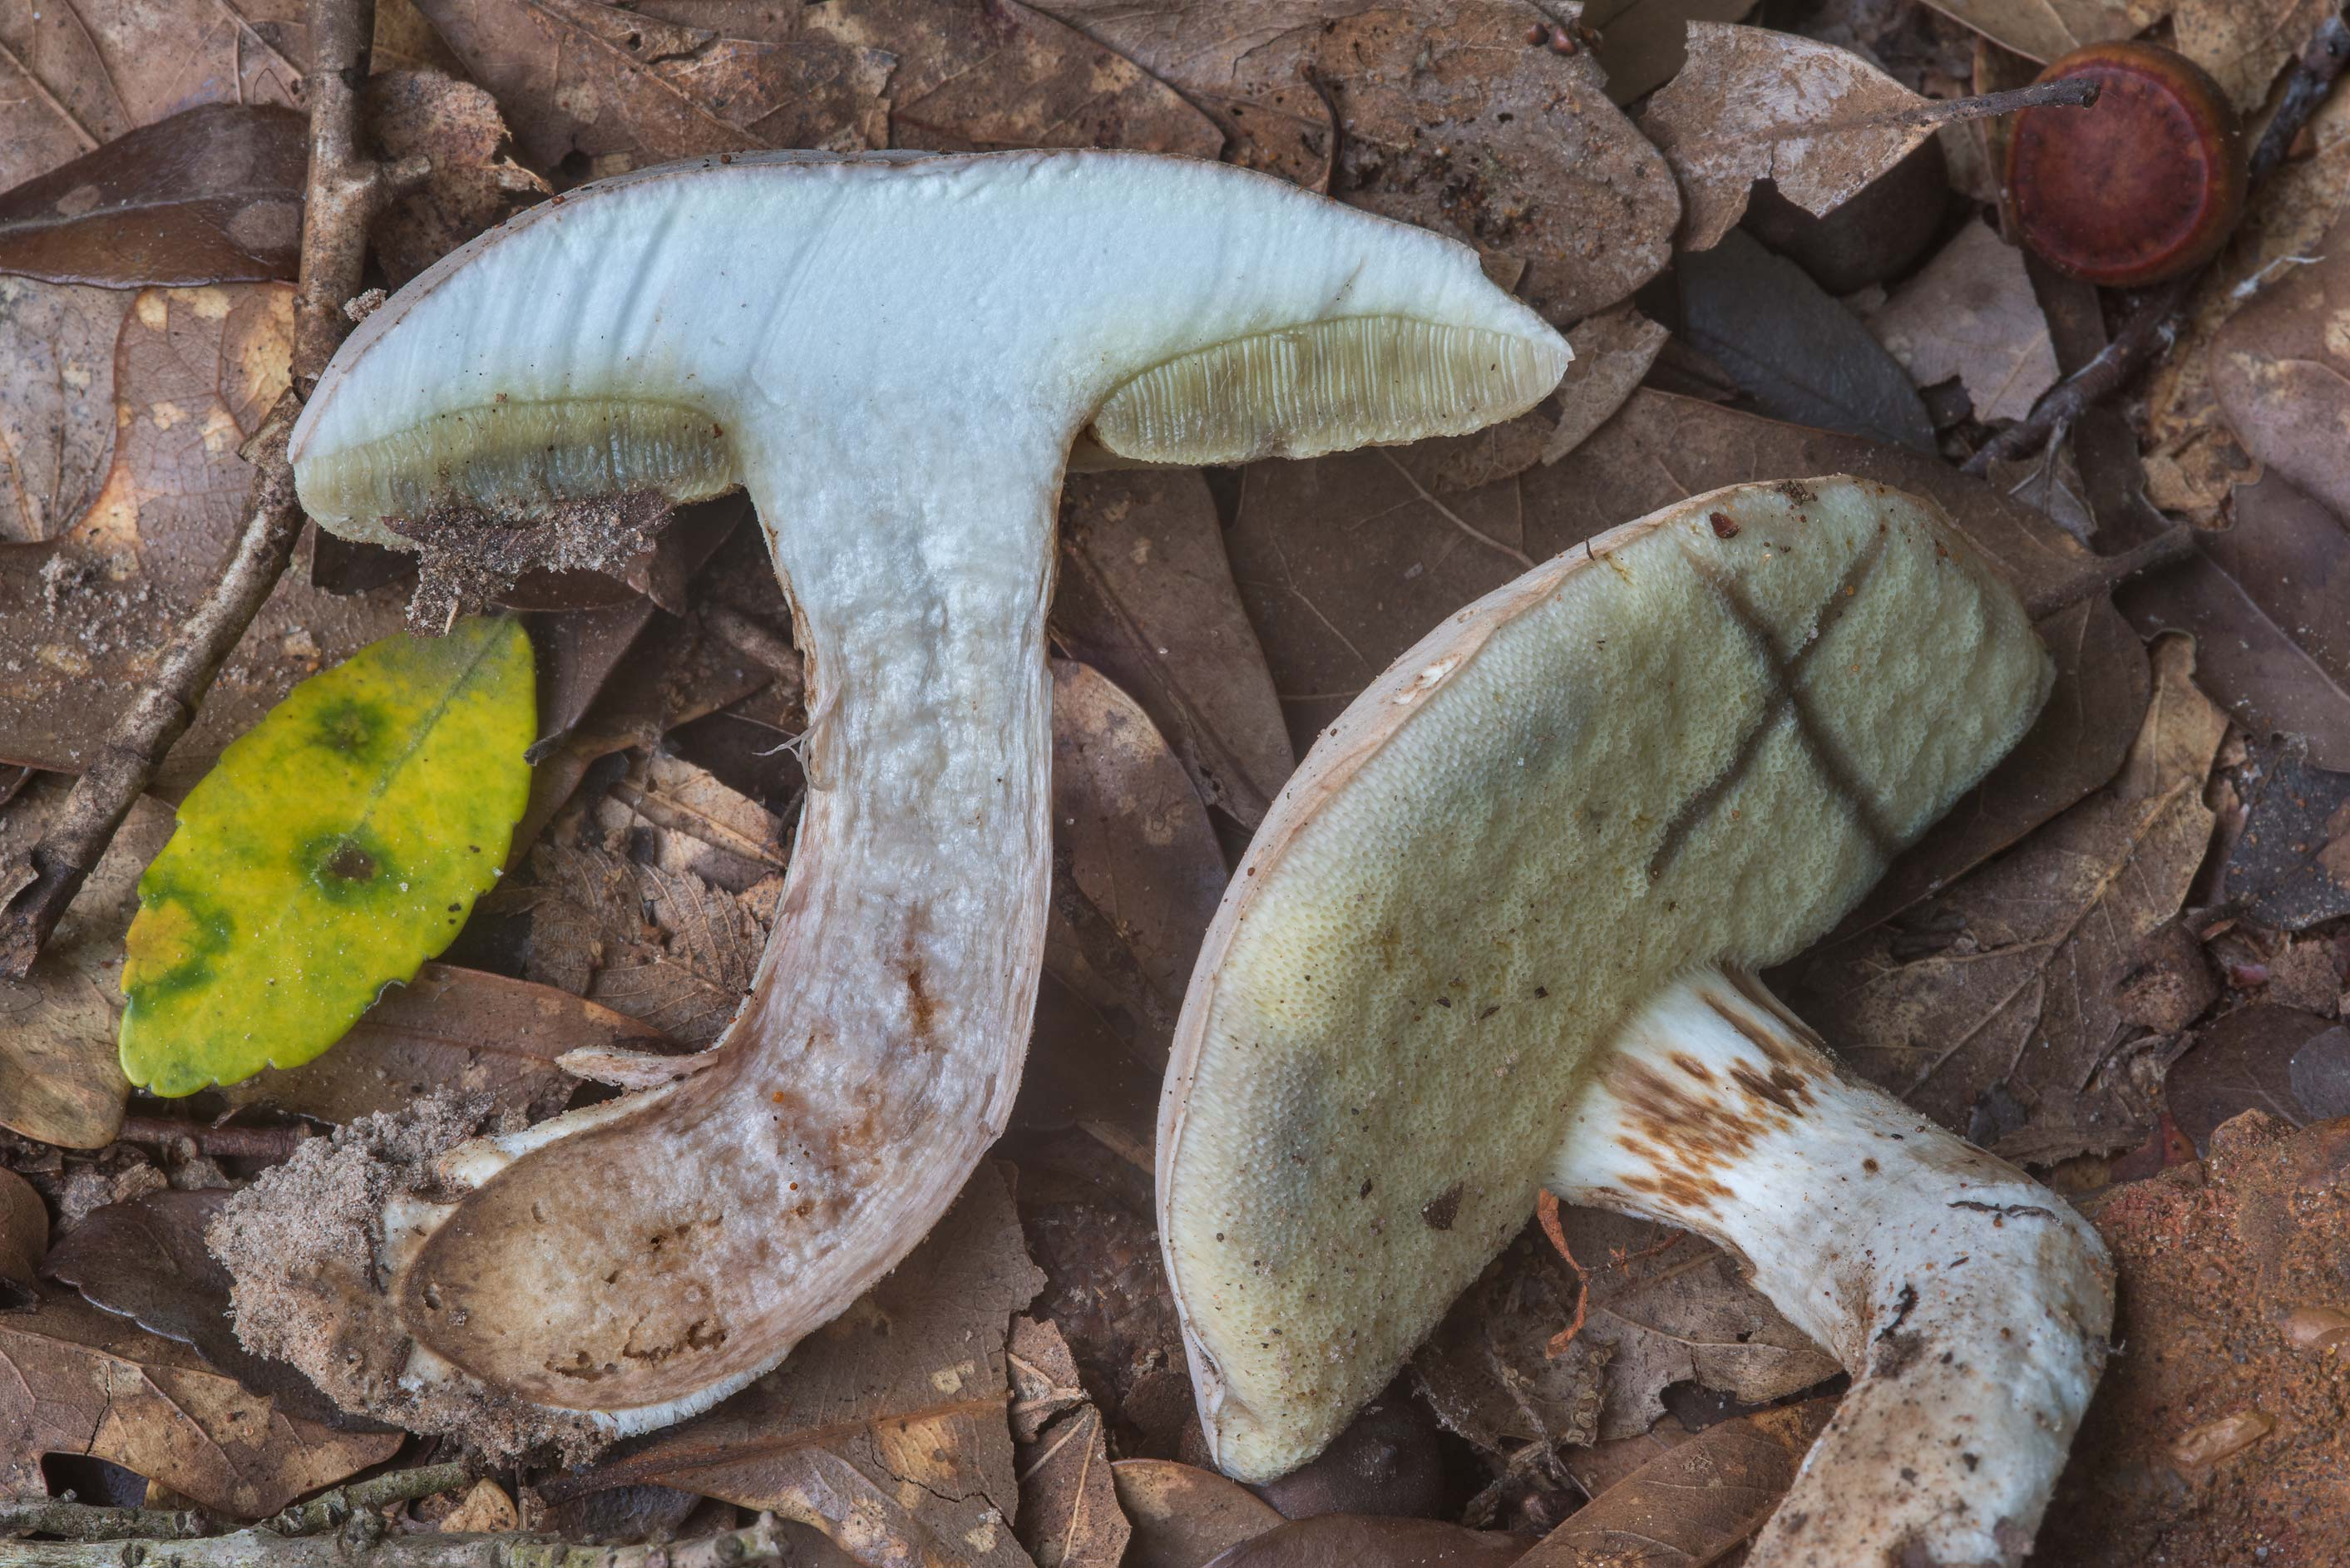 Dissected pale bolete mushroom (Boletus pallidus...Creek Park. College Station, Texas